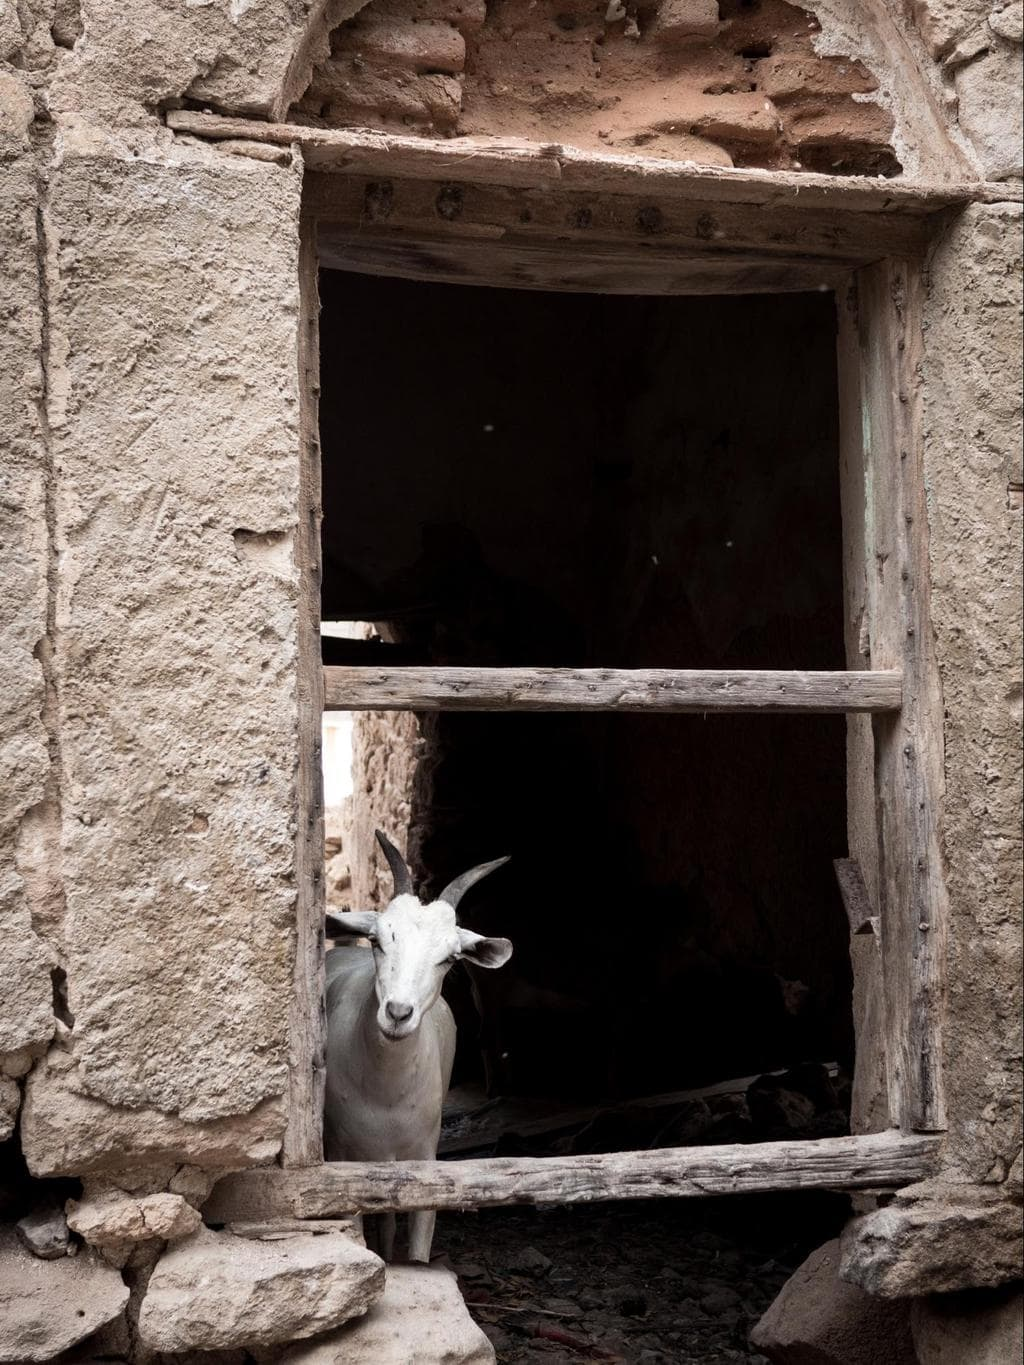 Funny goats in ruined buildings of Berbera